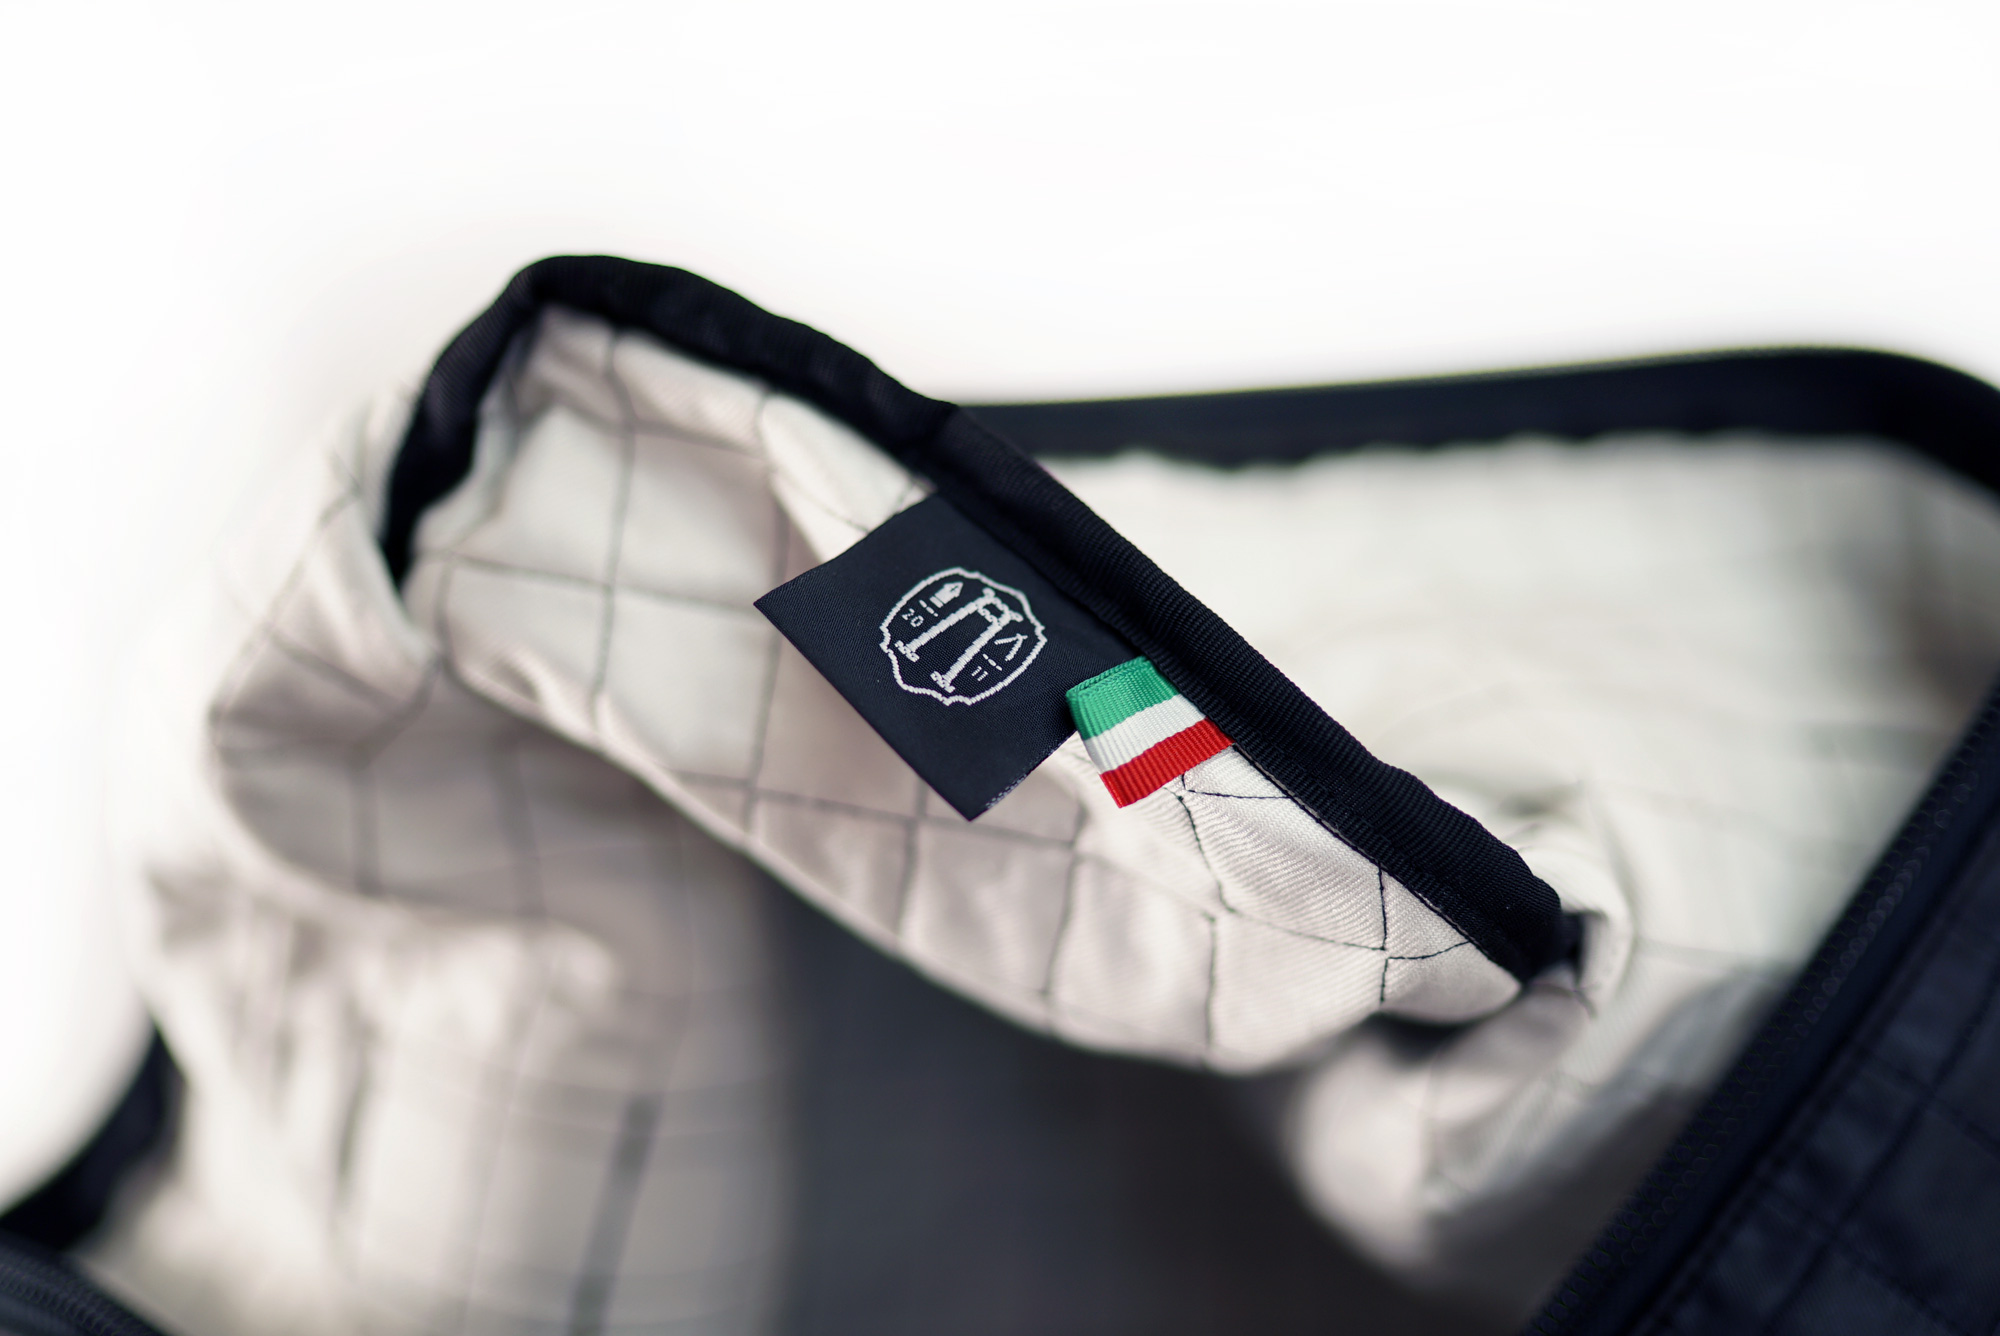 zen_garage_trackday_duffle_bag_madeinitaly